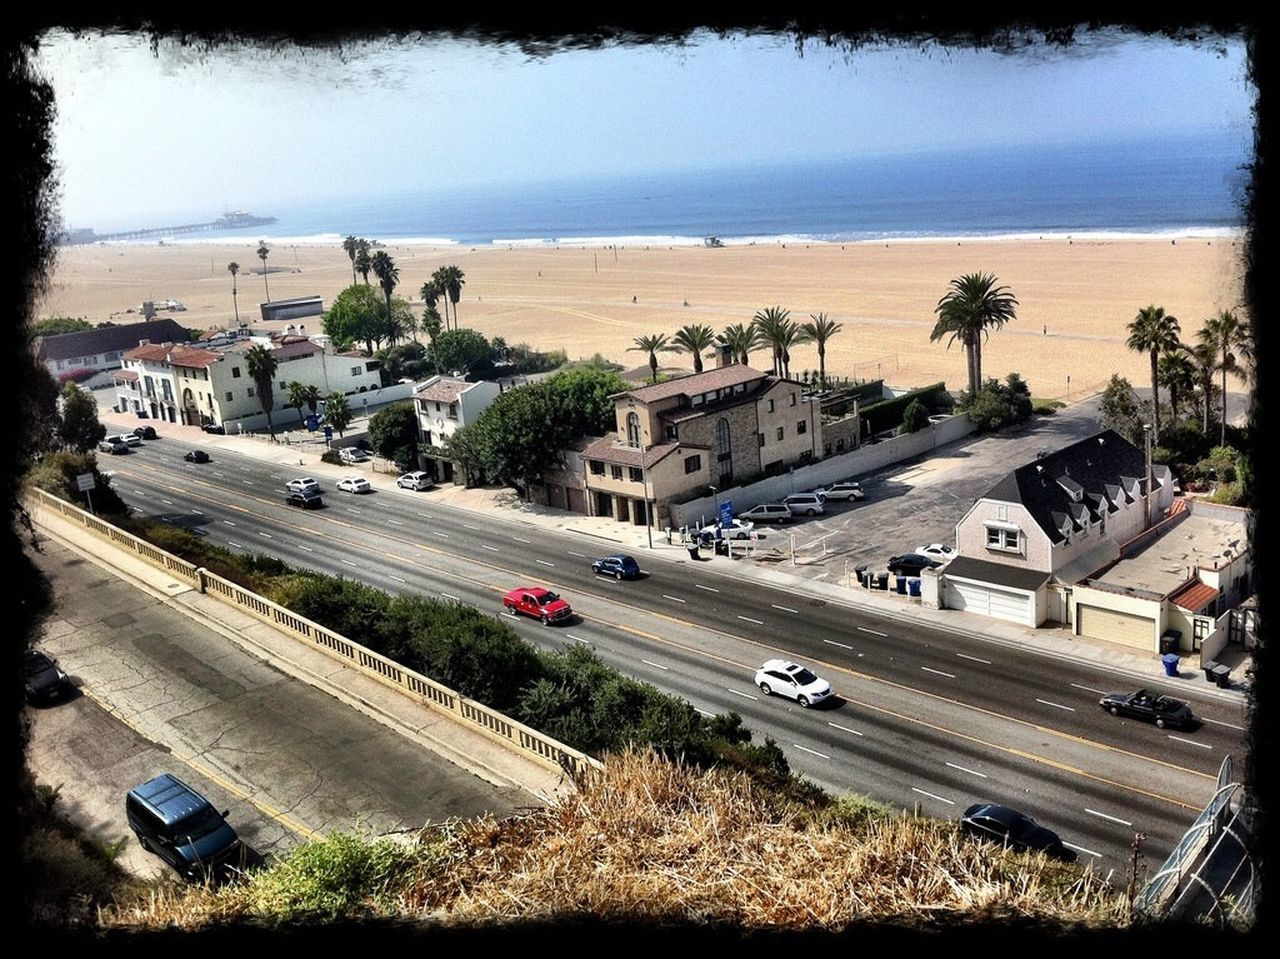 High angle view of cars on street by beach against blue sky